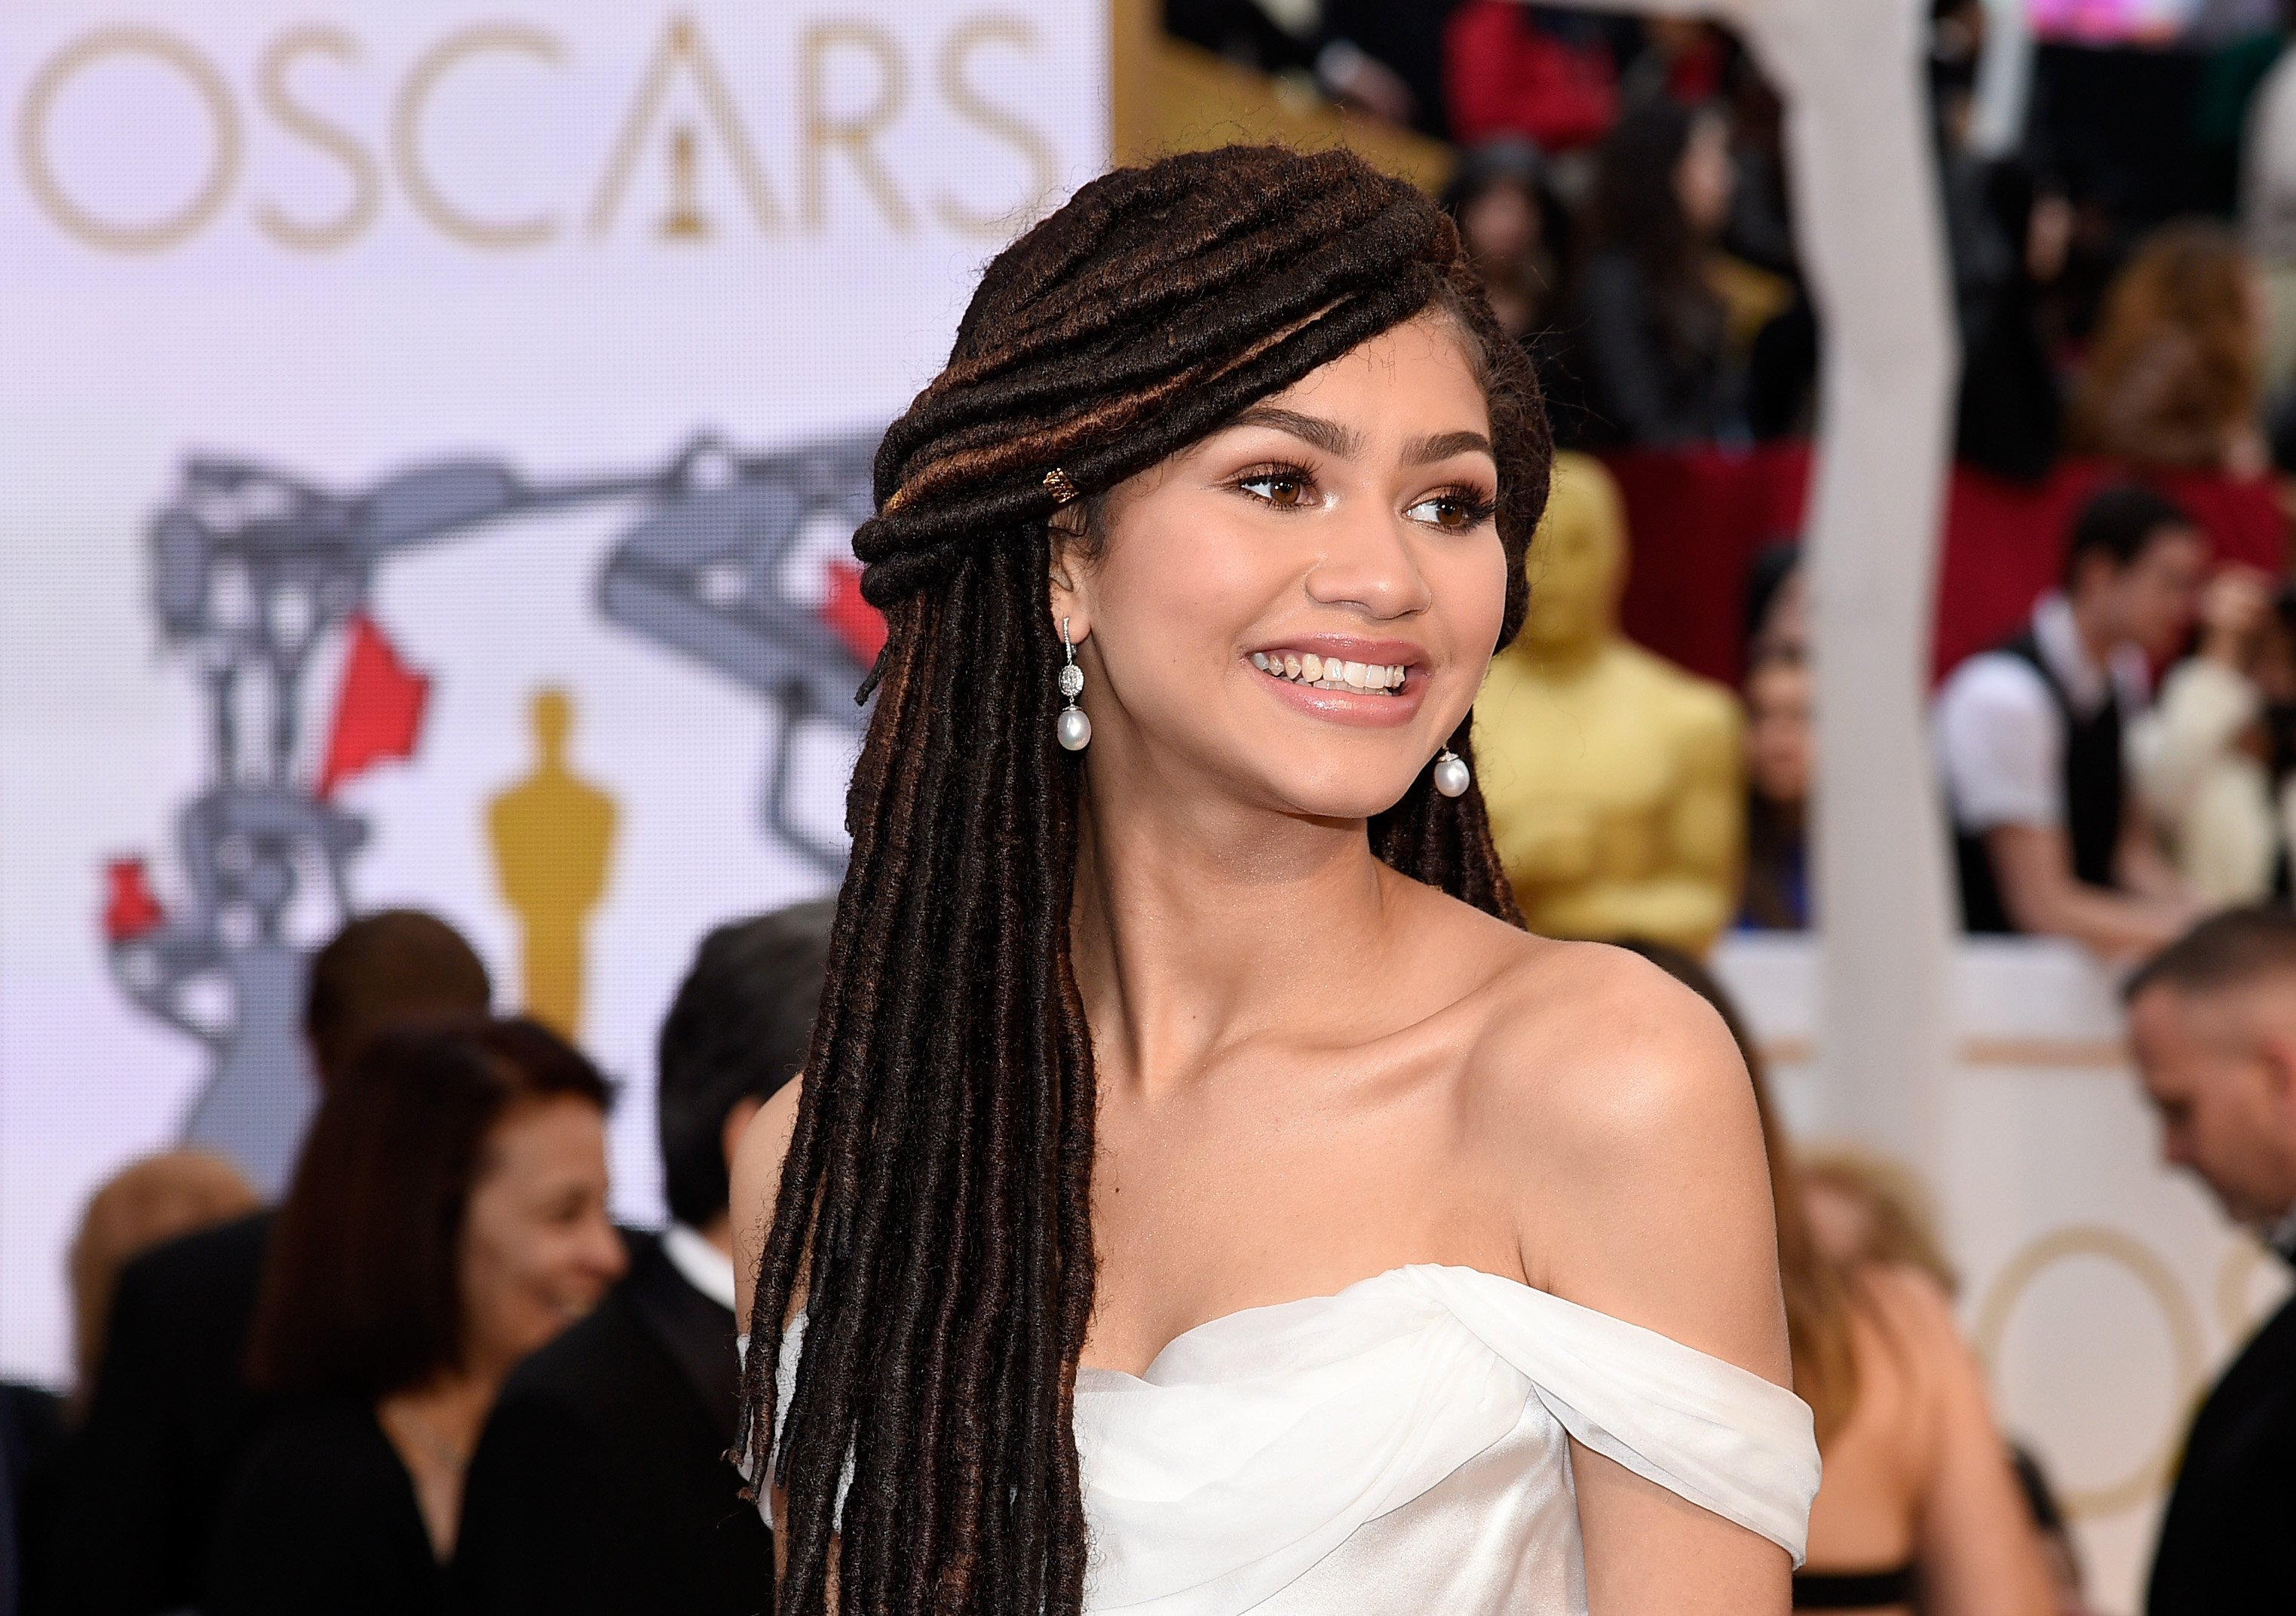 Zendaya attends the 87th Annual Academy Awards at Hollywood & Highland Center on February 22, 2015 in Hollywood, California. | Photo: Getty Images